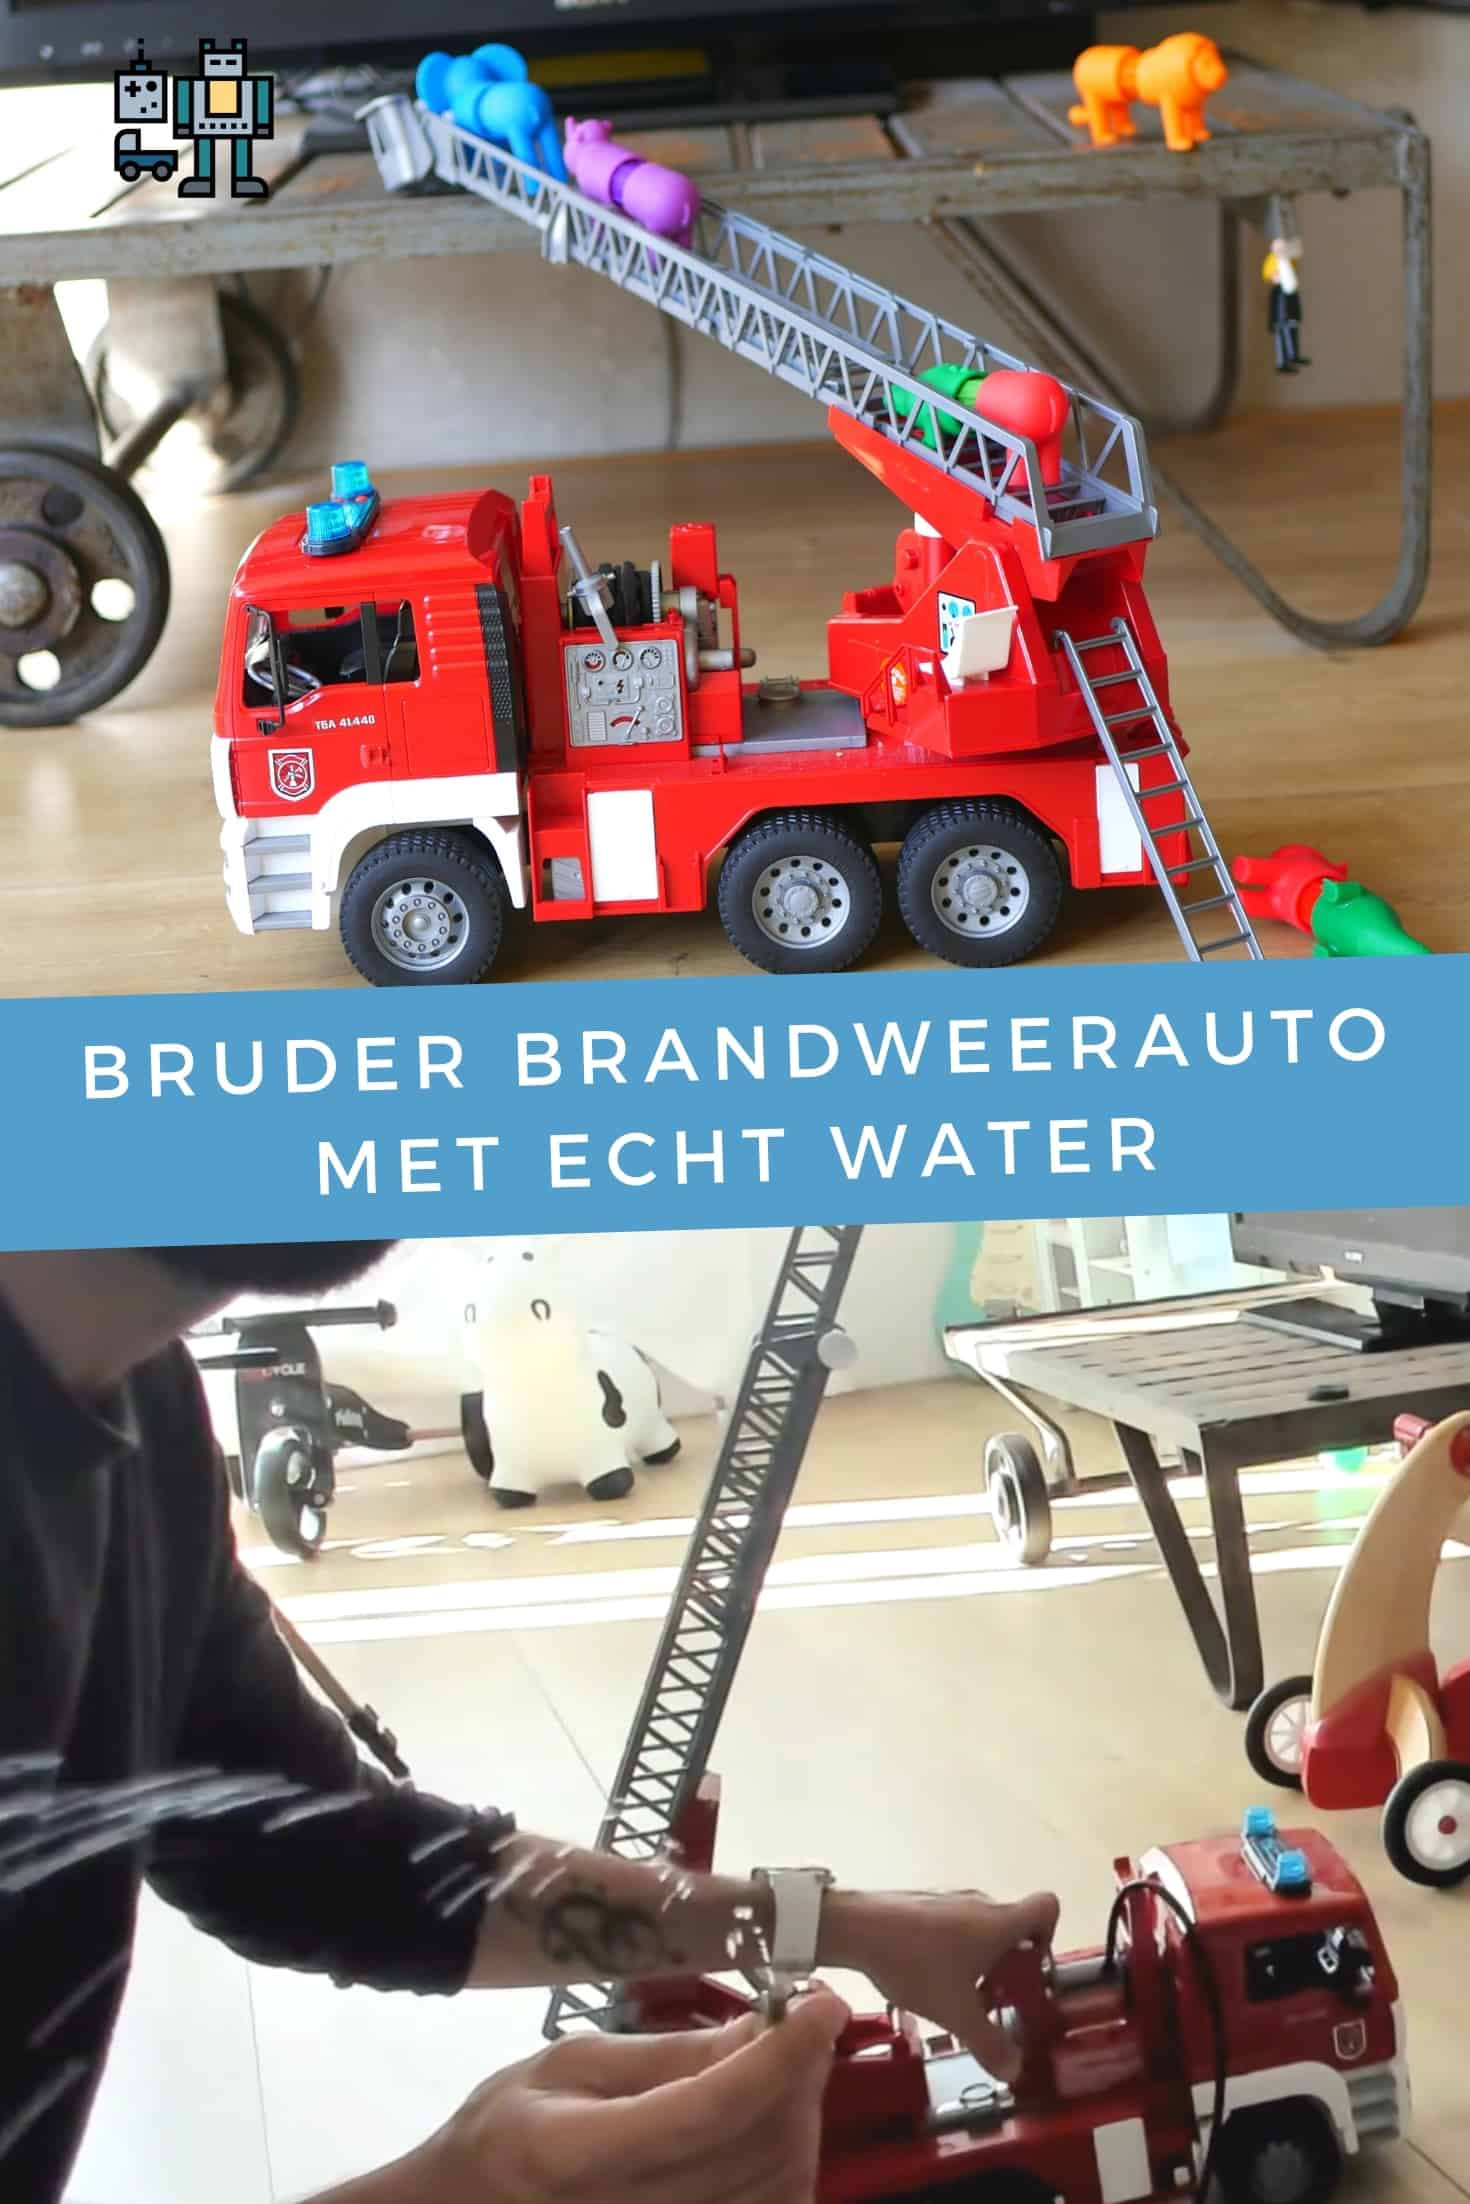 Bruder fire engine with real water